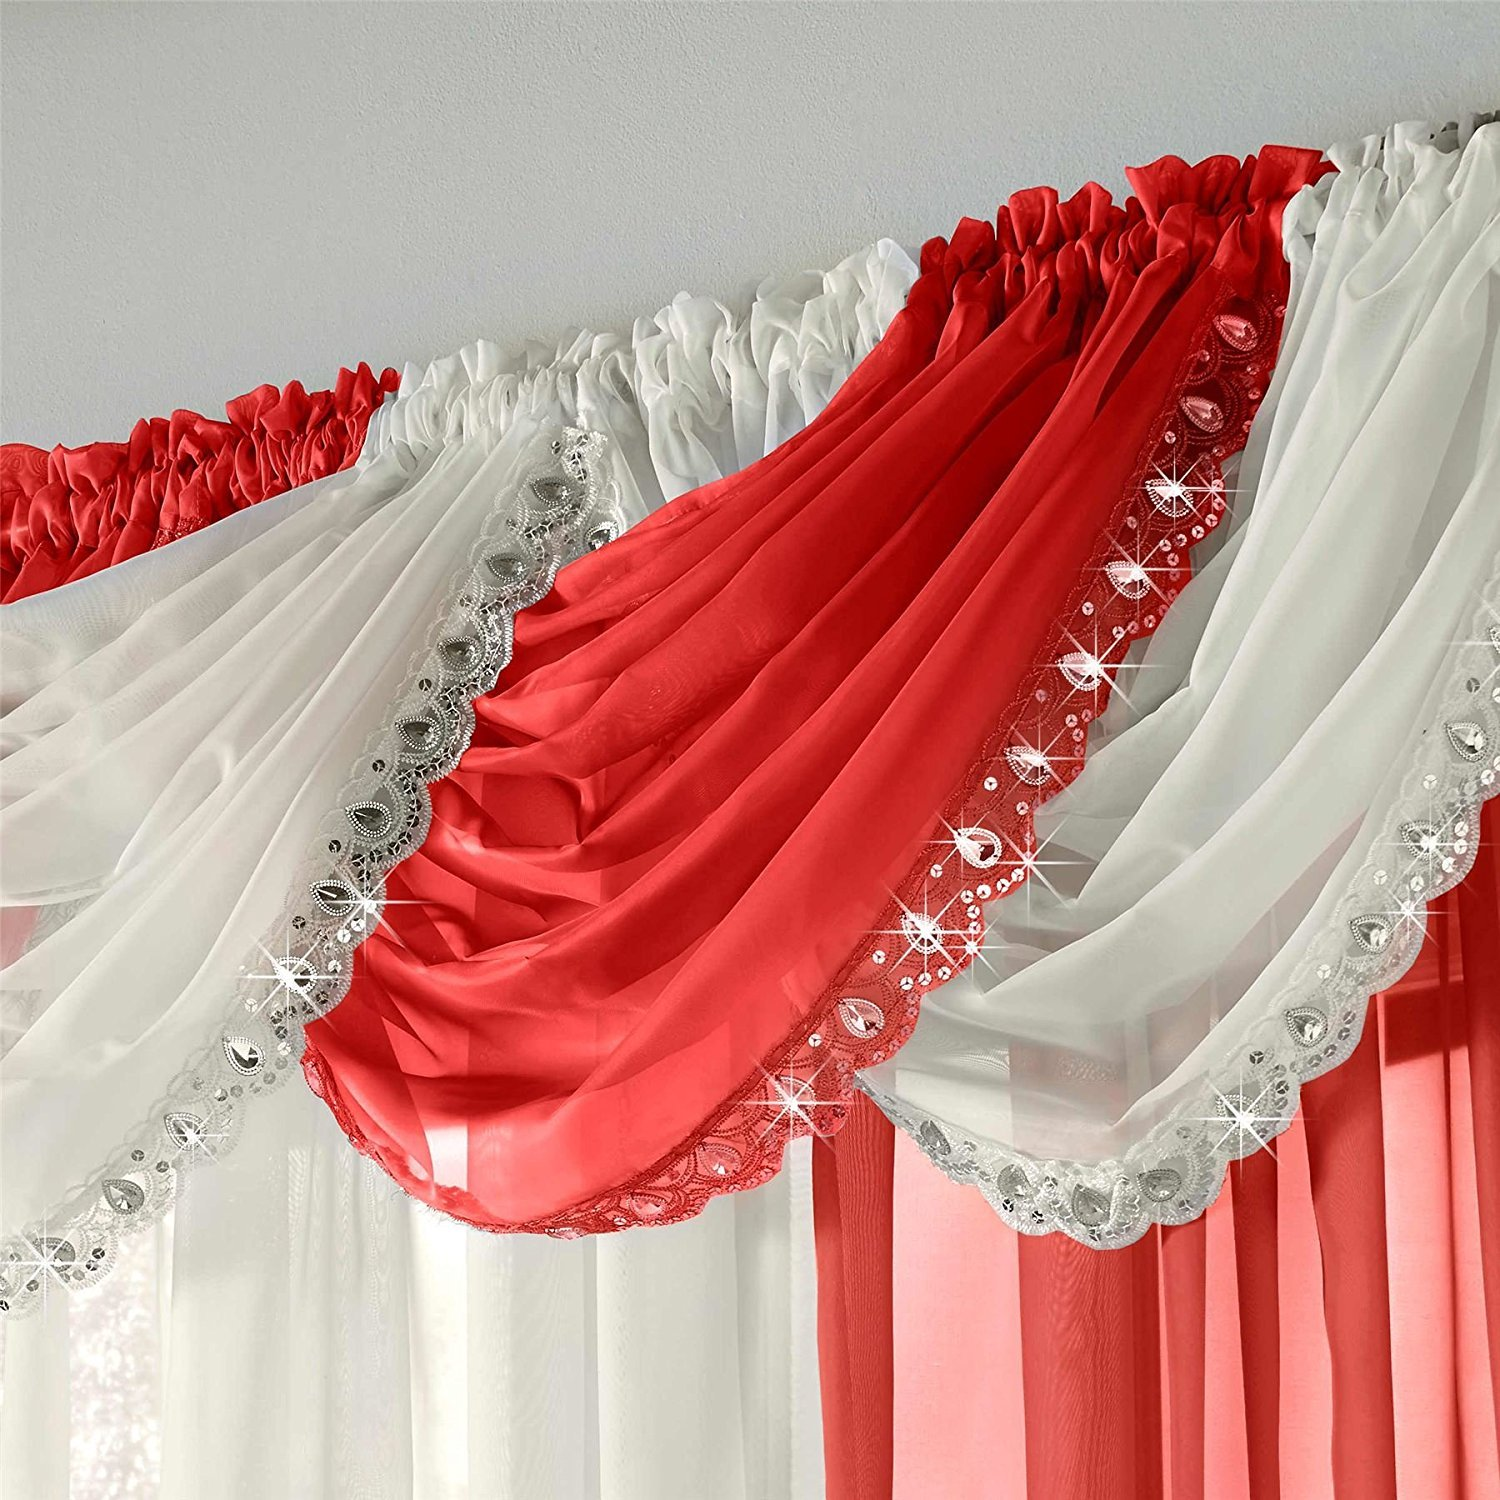 Glitzy Sparkle Jewelled Crystal Sequin Trim Voile Curtain Swag (Butter MilkCream) Maple Textiles